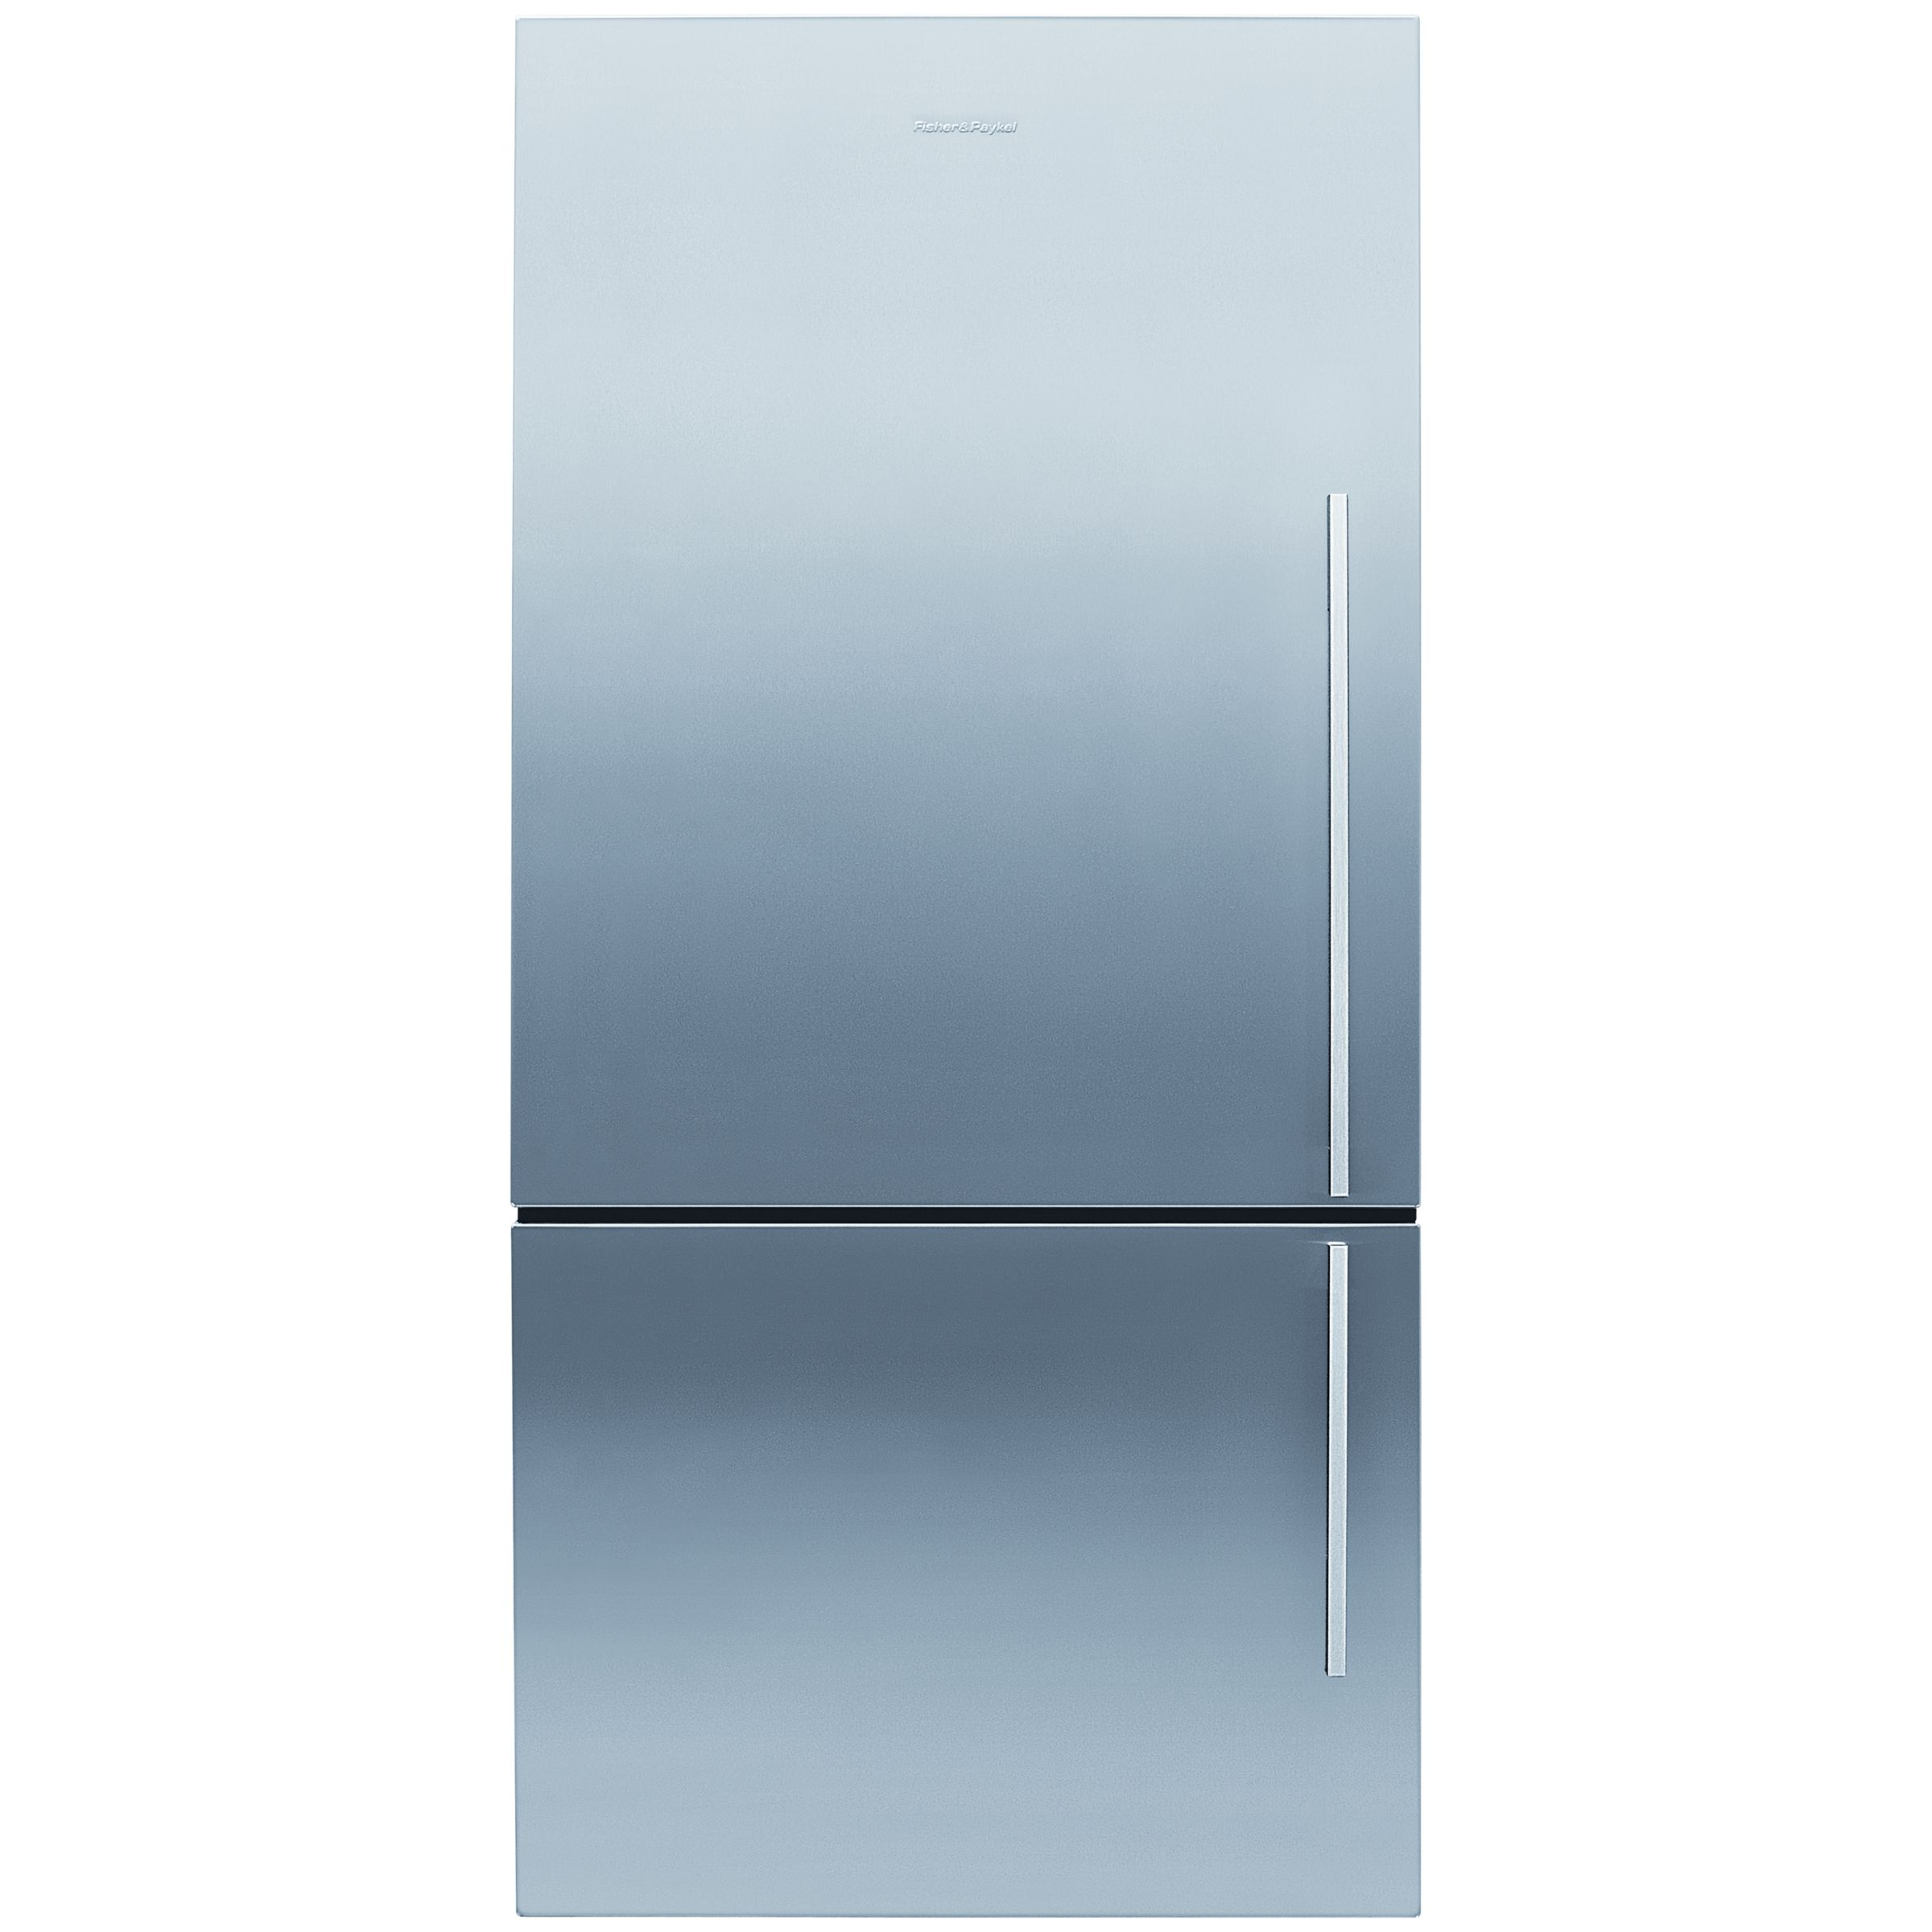 Fisher & Paykel Fisher & Paykel E522BLXFD4 Fridge Freezer, A+ Energy Rating, 80cm Wide, Stainless Steel